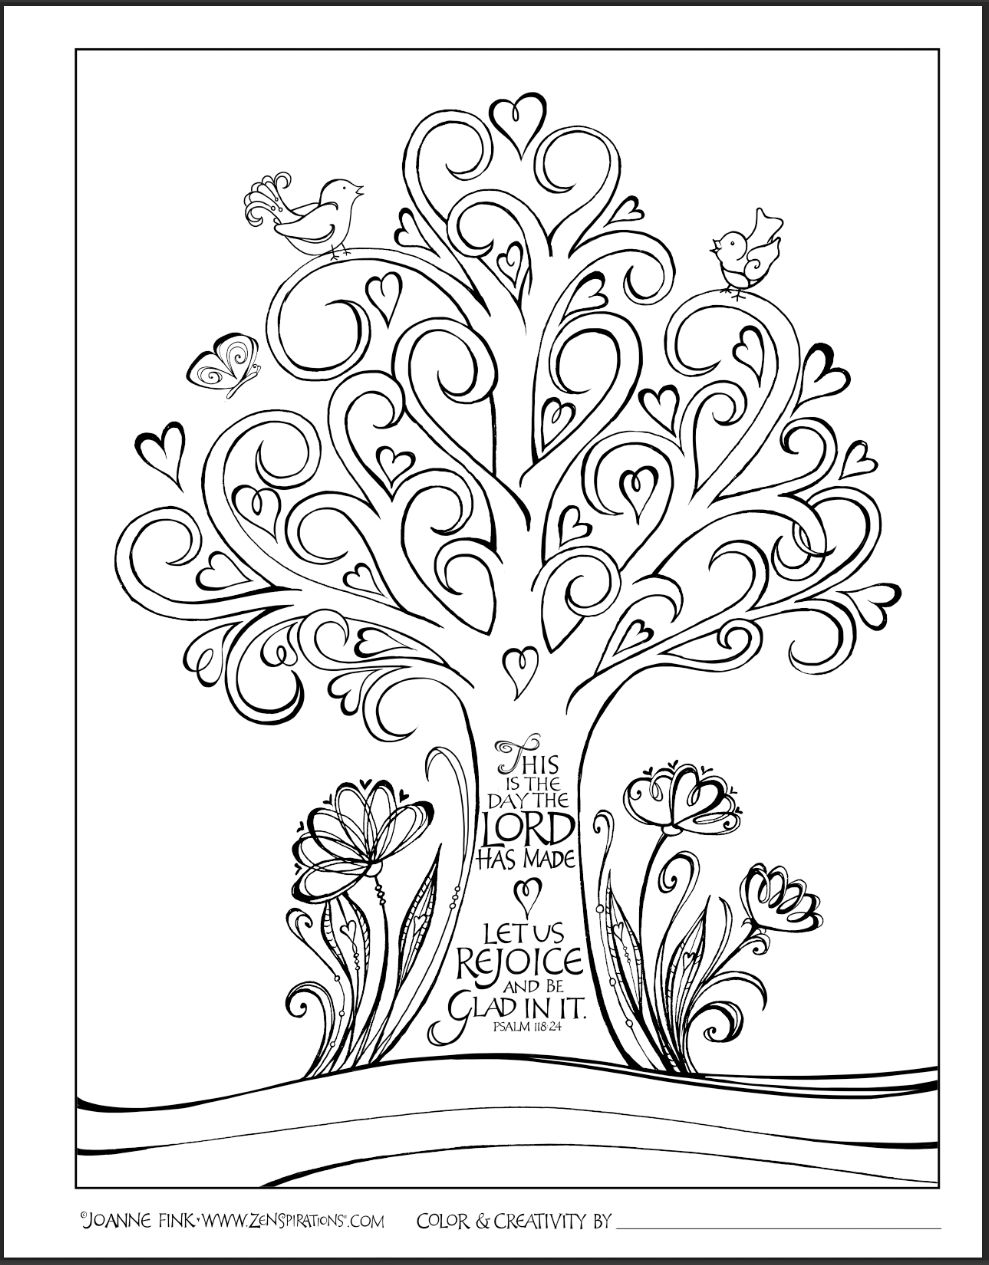 Color Peace | Coloring Pages | Bible Coloring Pages